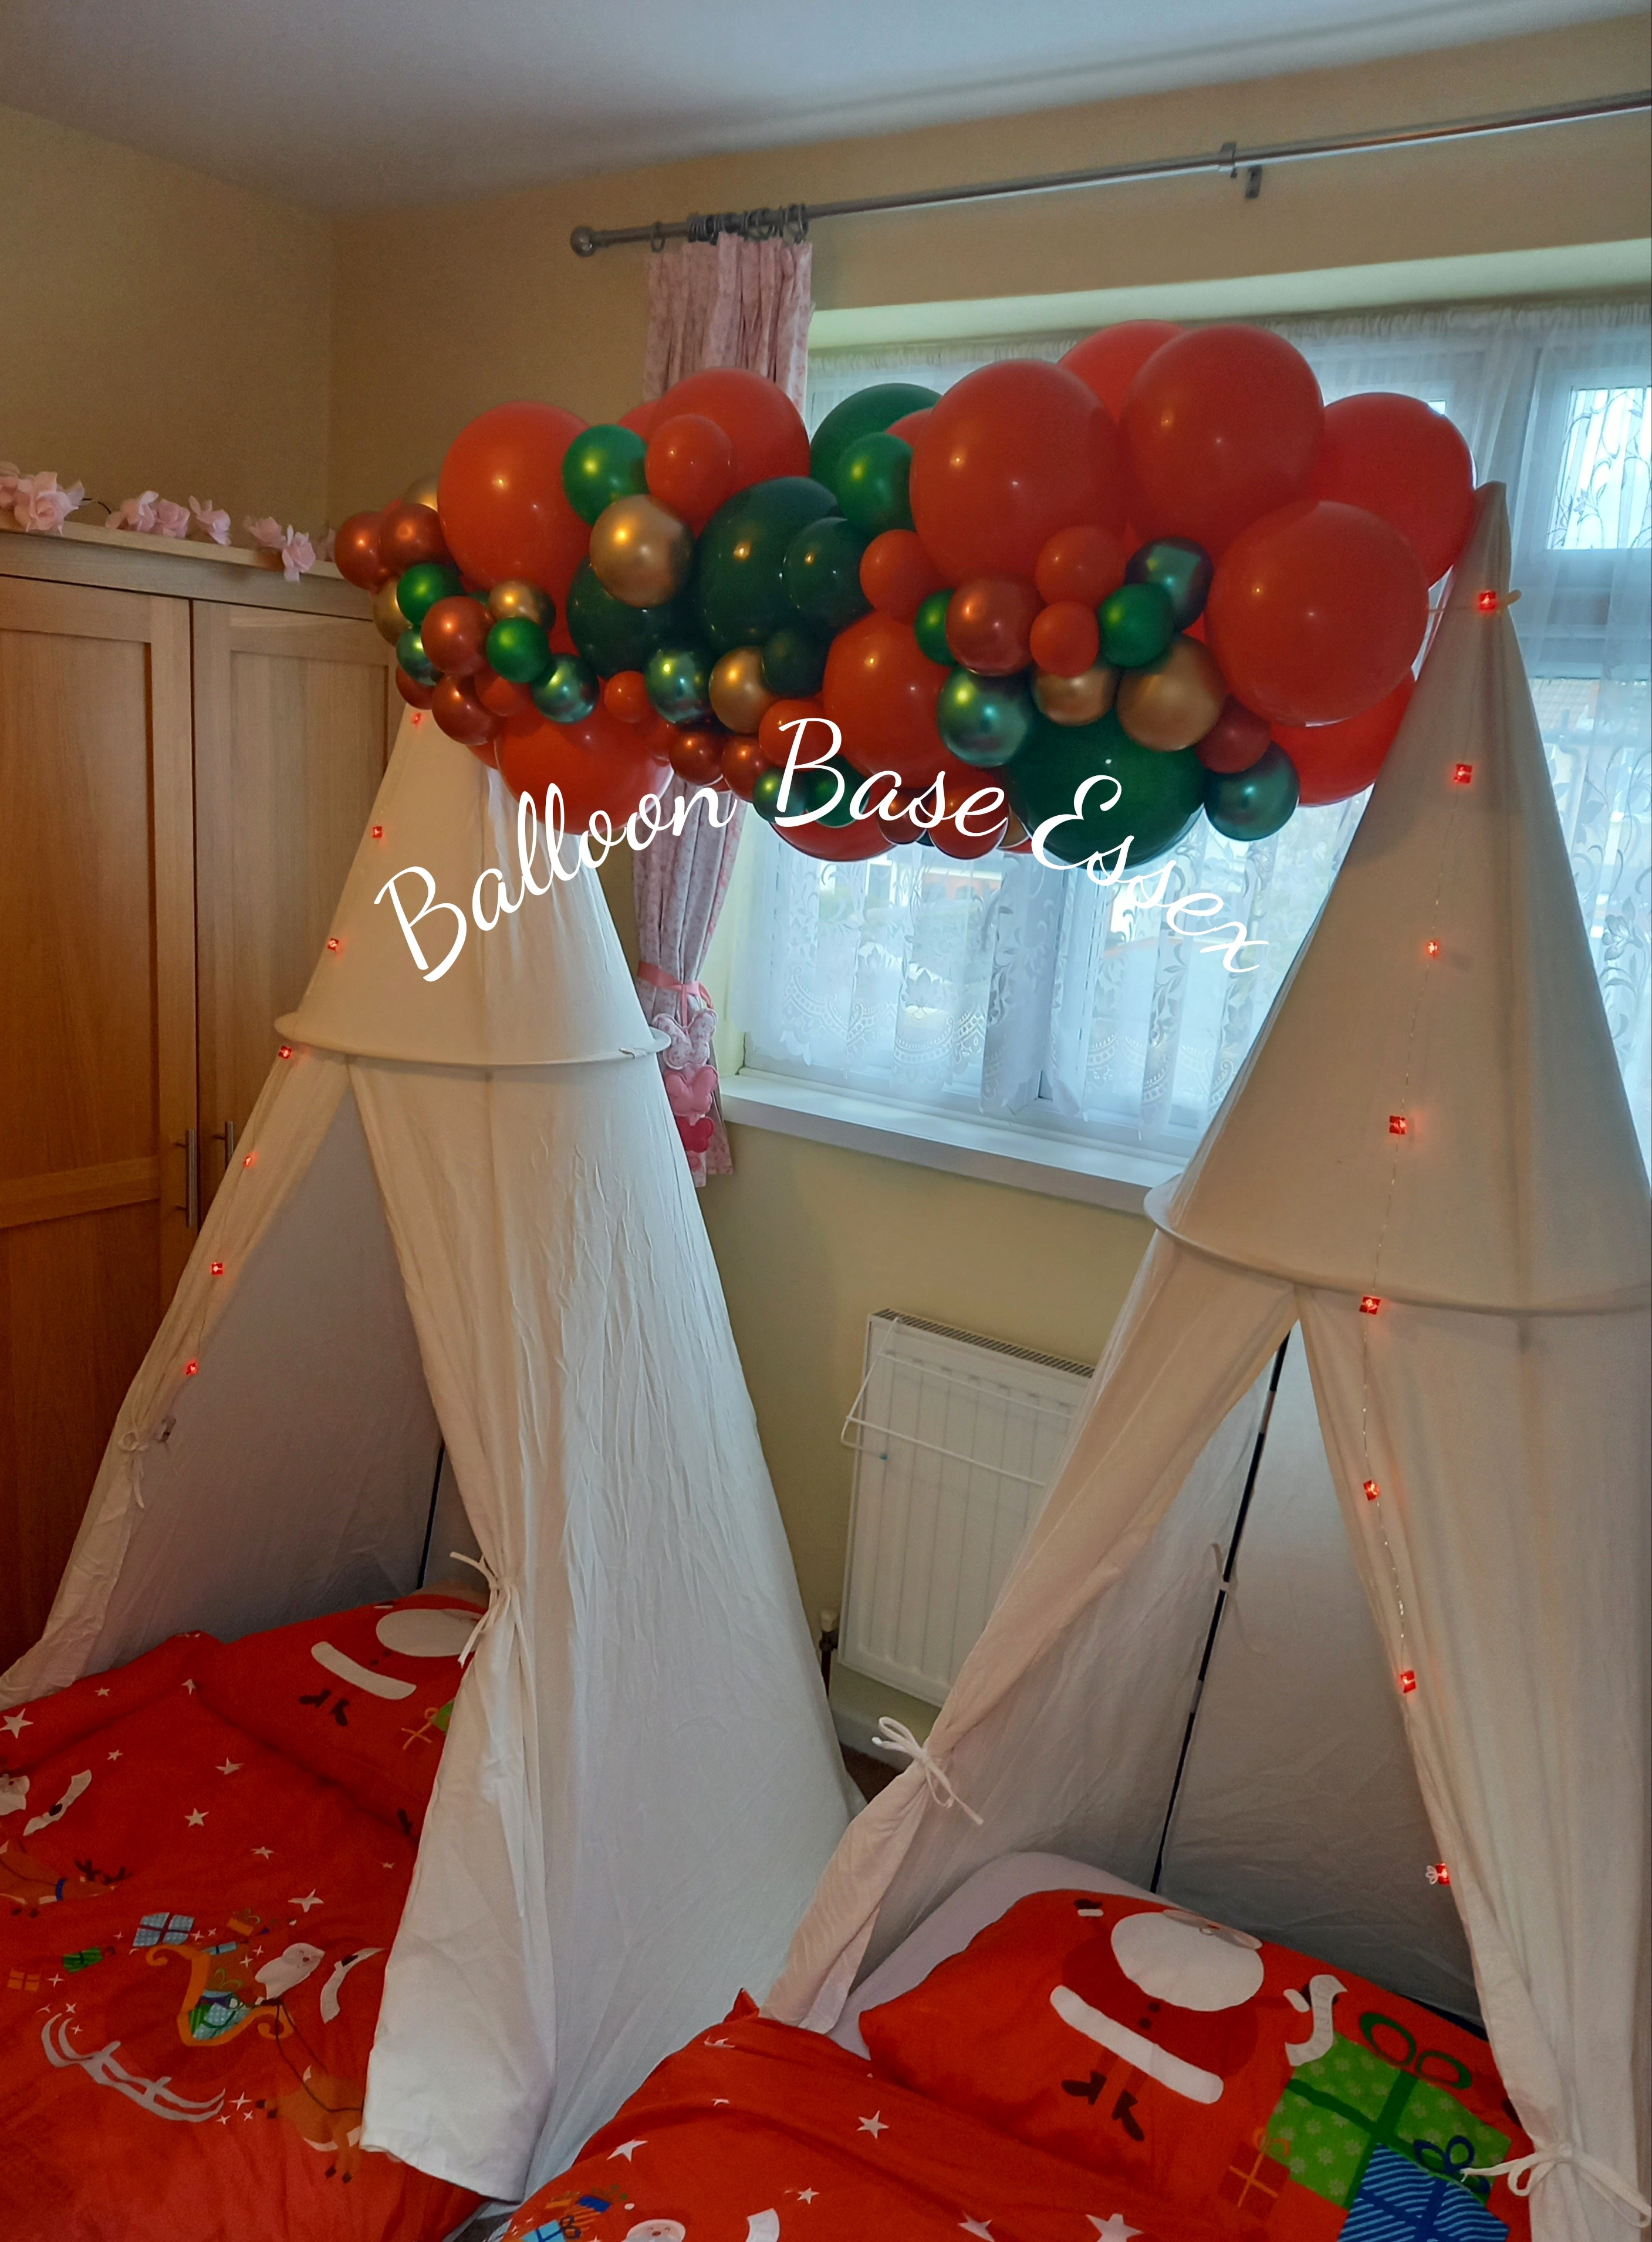 White tents with Chritmas balloon garland